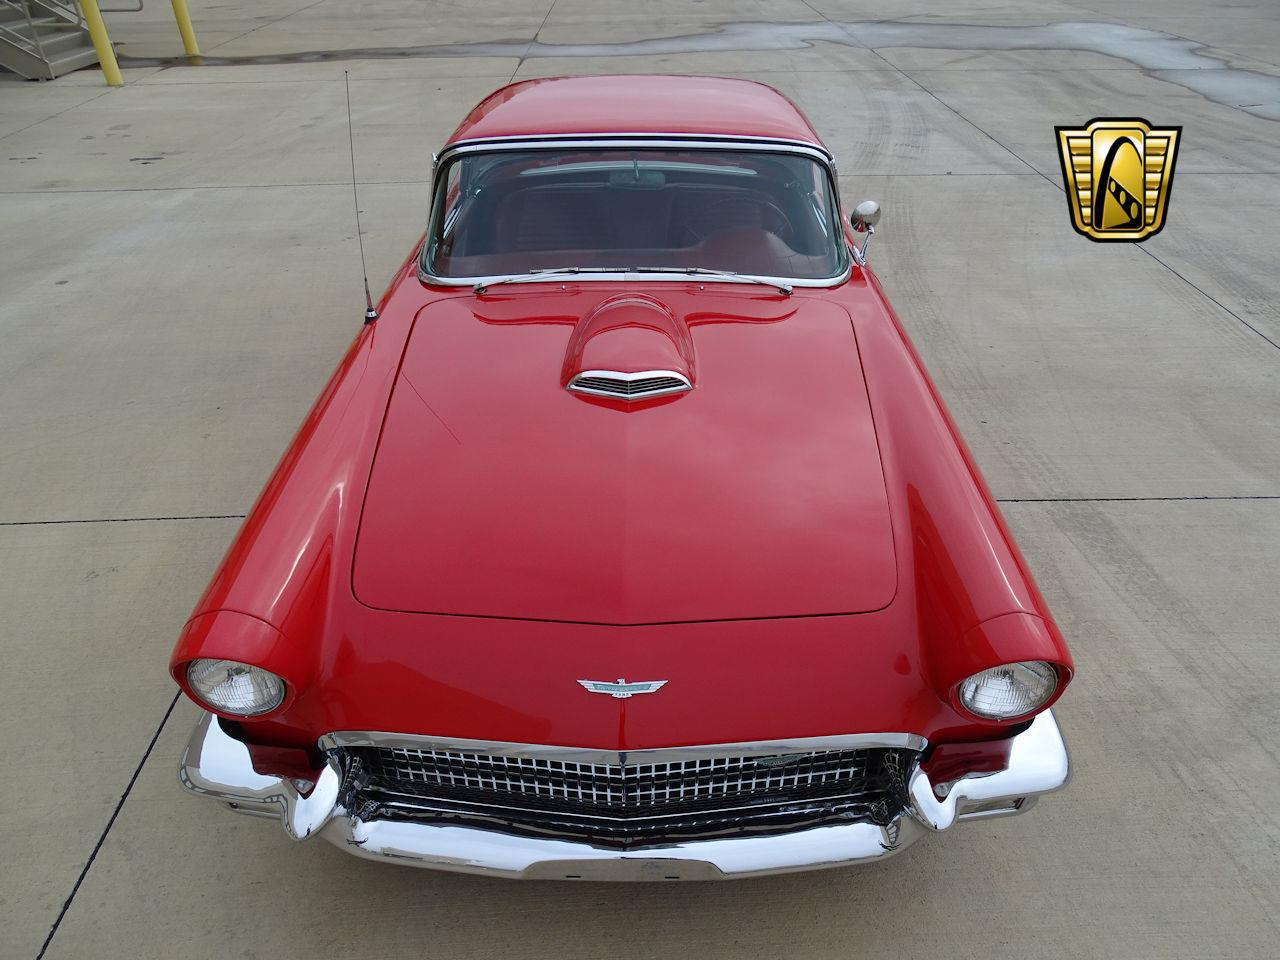 Large Picture of Classic '57 Ford Thunderbird - $35,995.00 Offered by Gateway Classic Cars - Dallas - MZF2